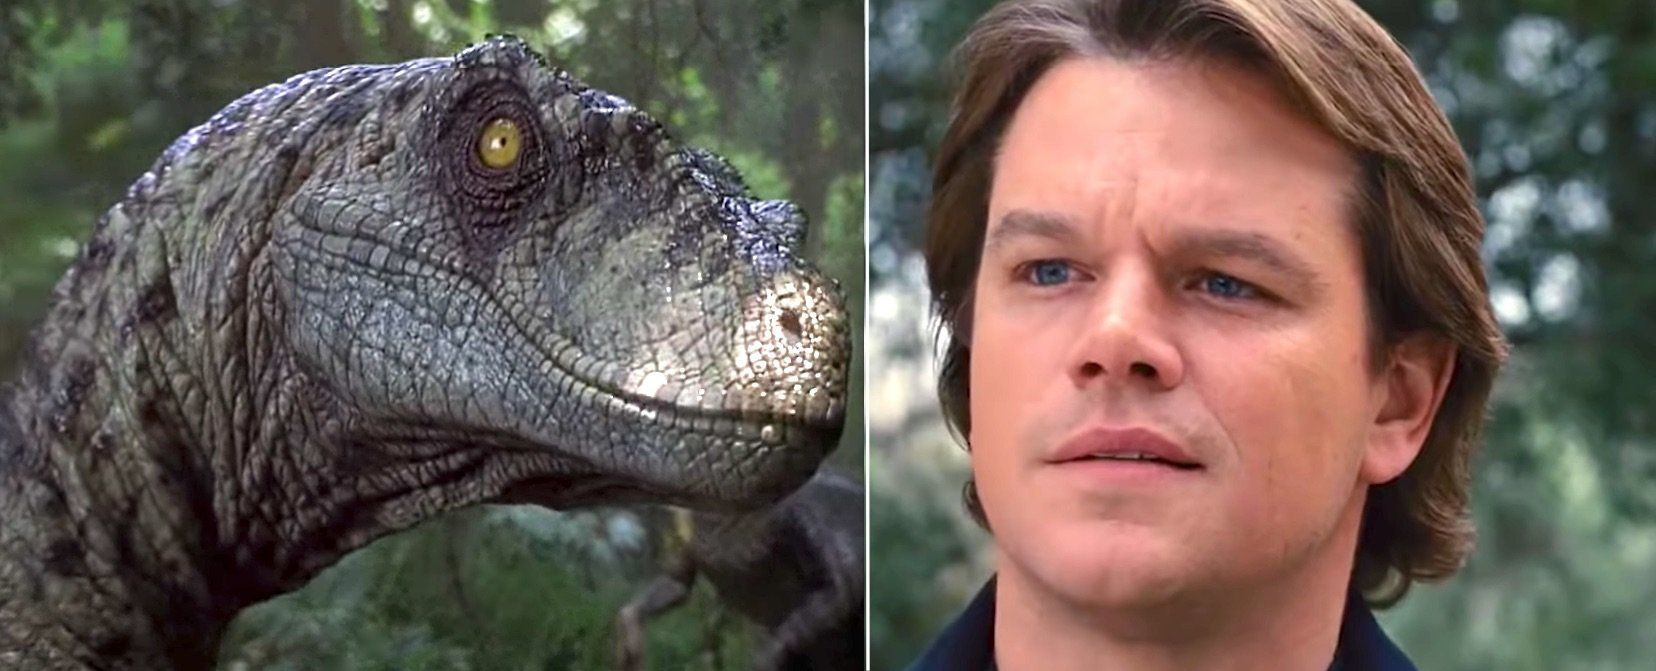 'We Bought A Jurassic Park' Is The Matt Damon-Dino Mashup You've Been Hoping